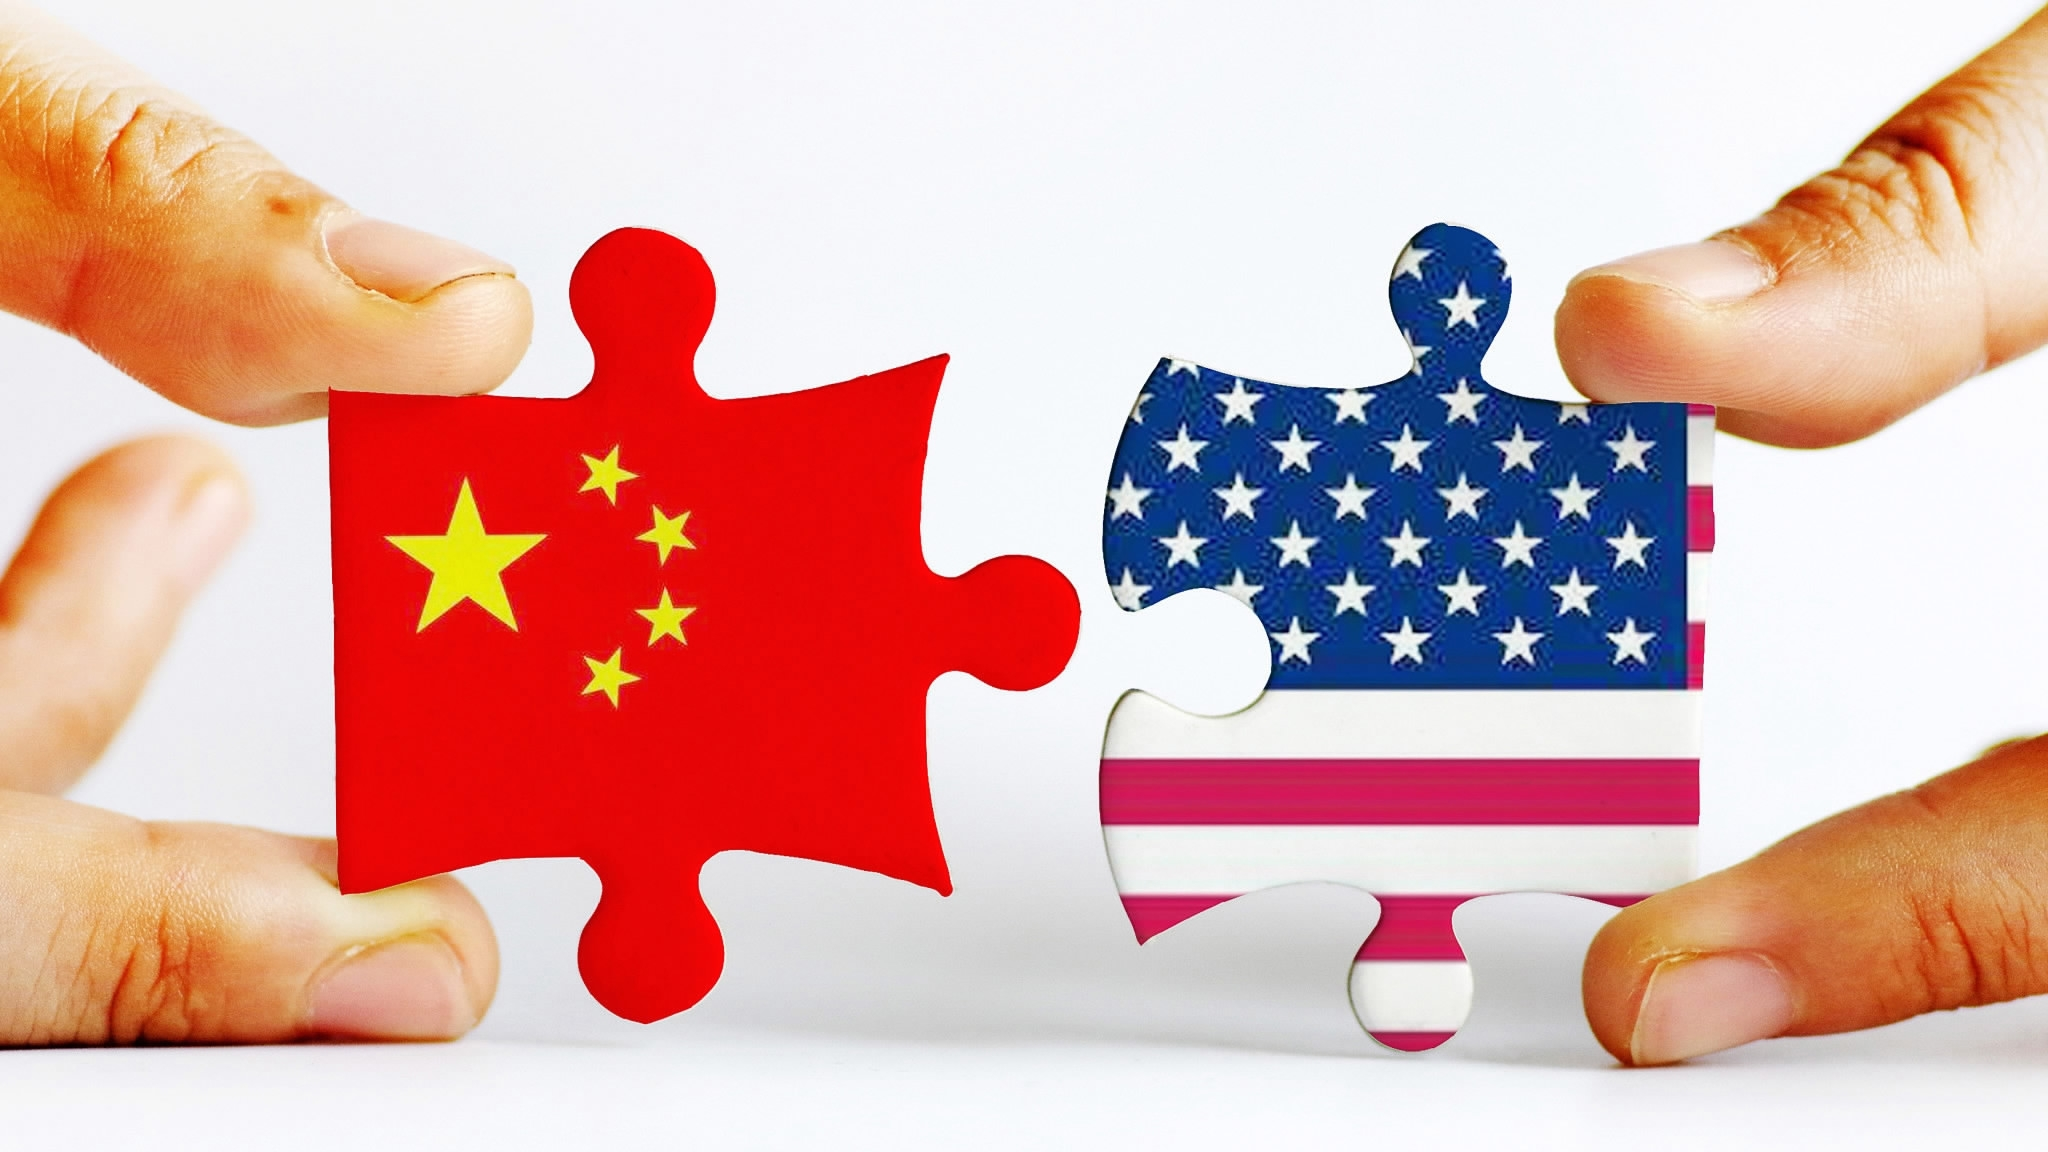 With sincerity, no issue is insoluble between China, U.S.